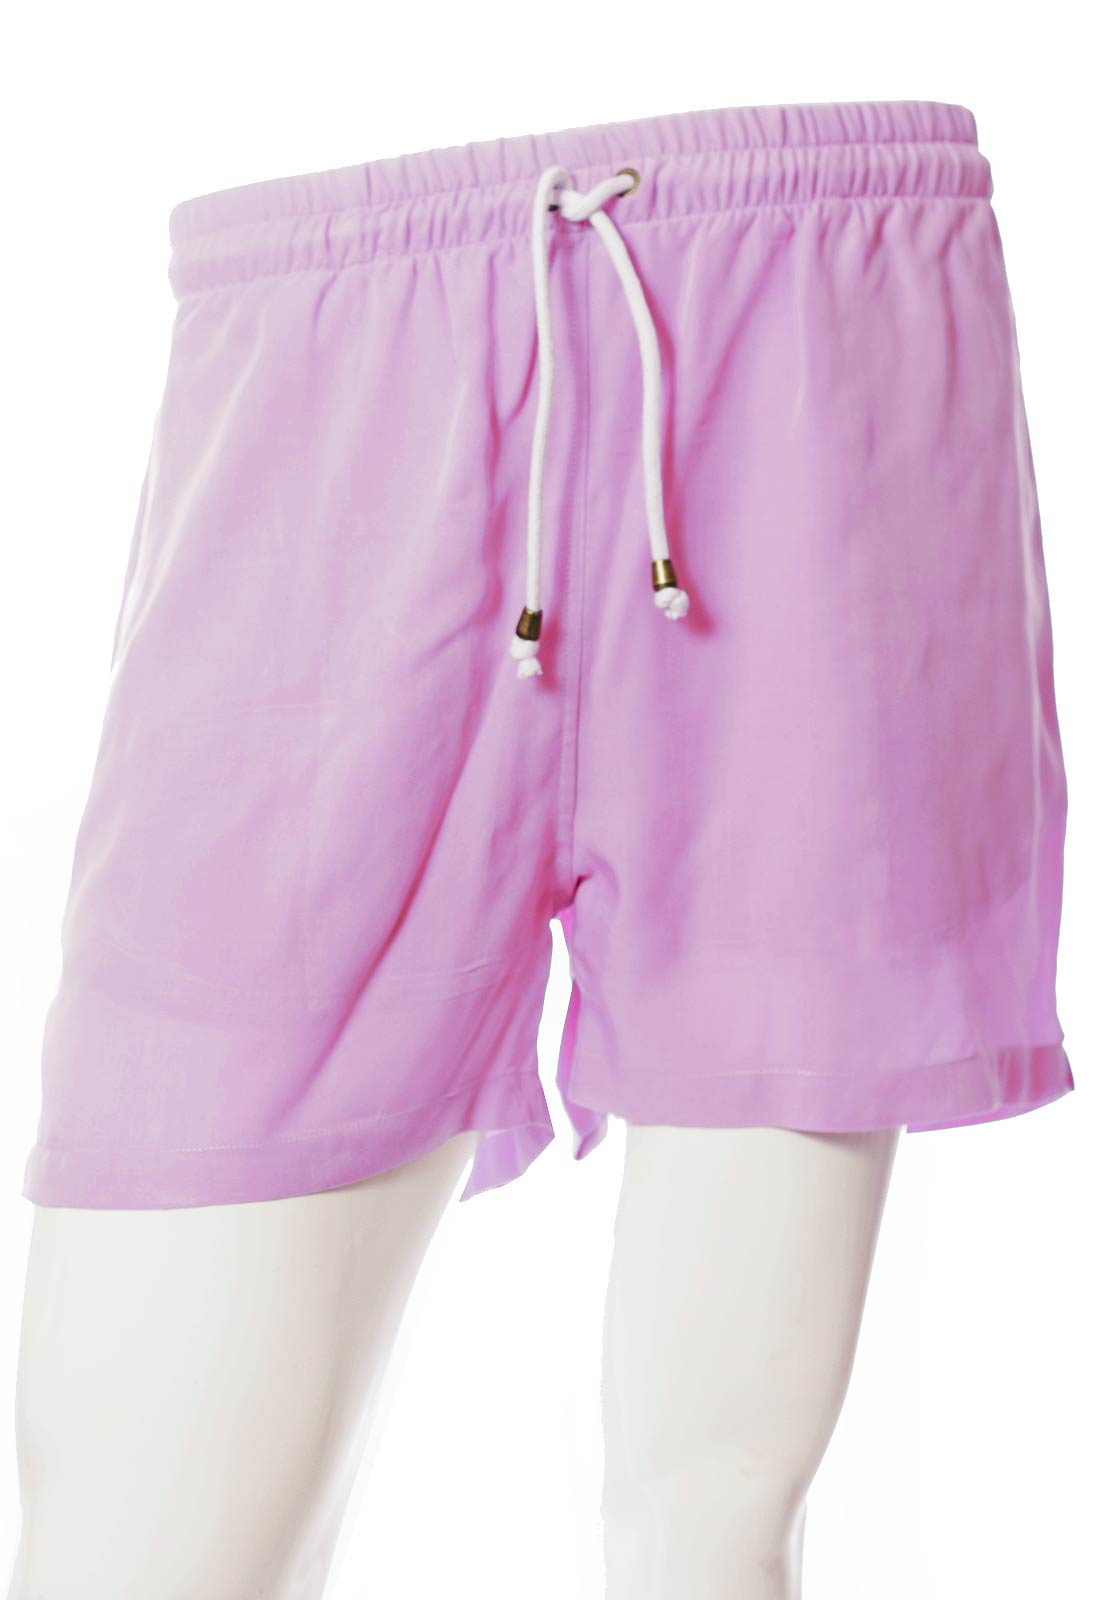 Shorts Color Blocking Clubber Pop Balada Novela Unissex Roxo